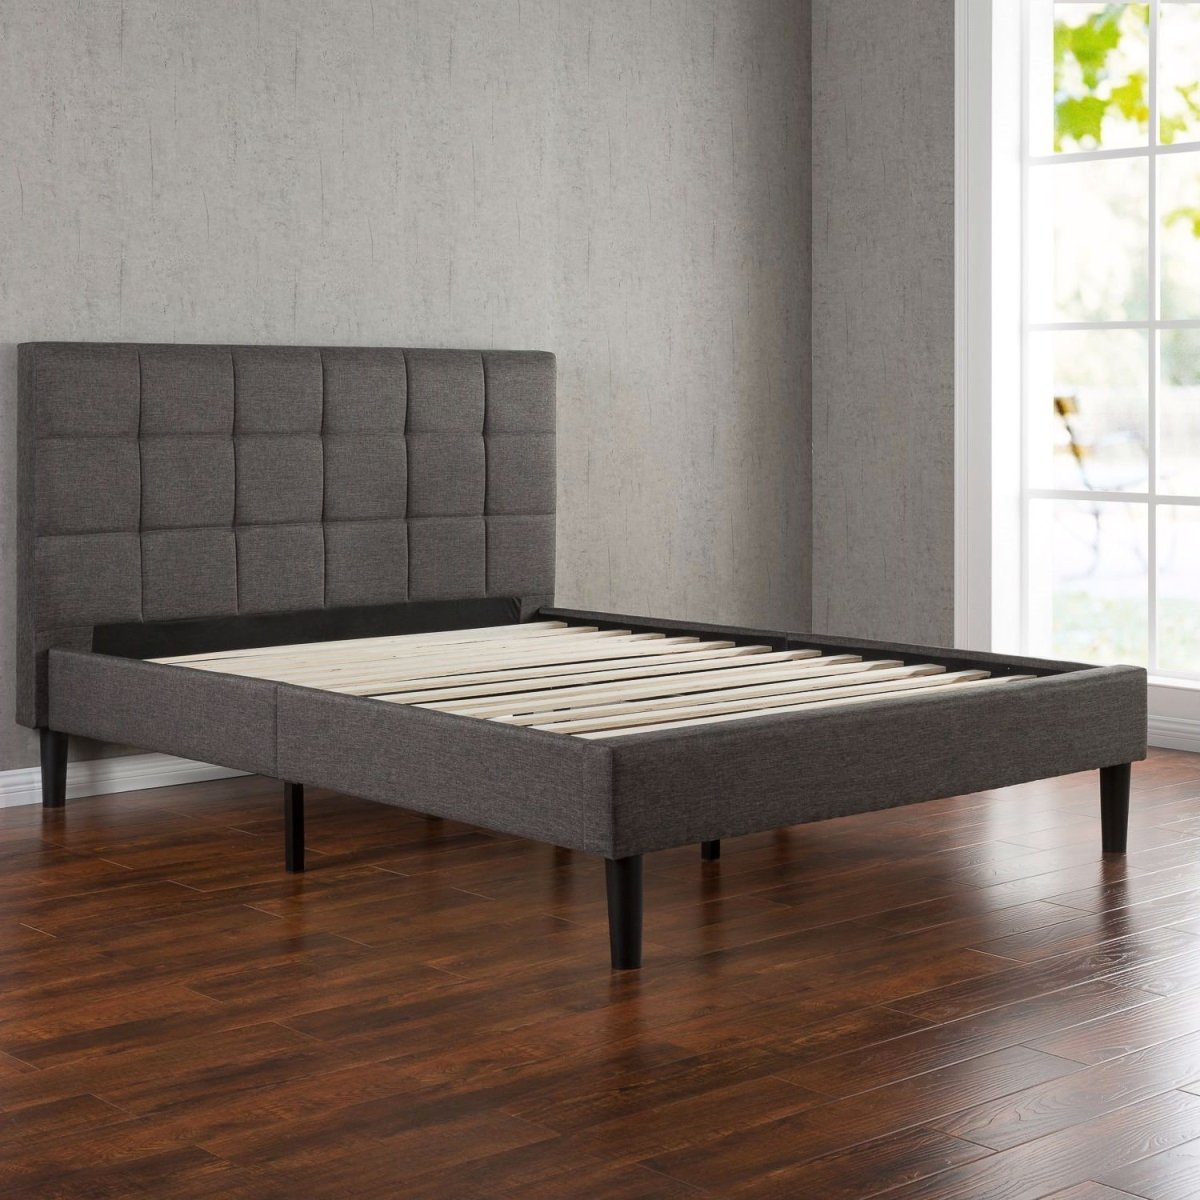 Full size Modern Platform Bed with Dark Grey Square Stitched Upholstered Headboard.